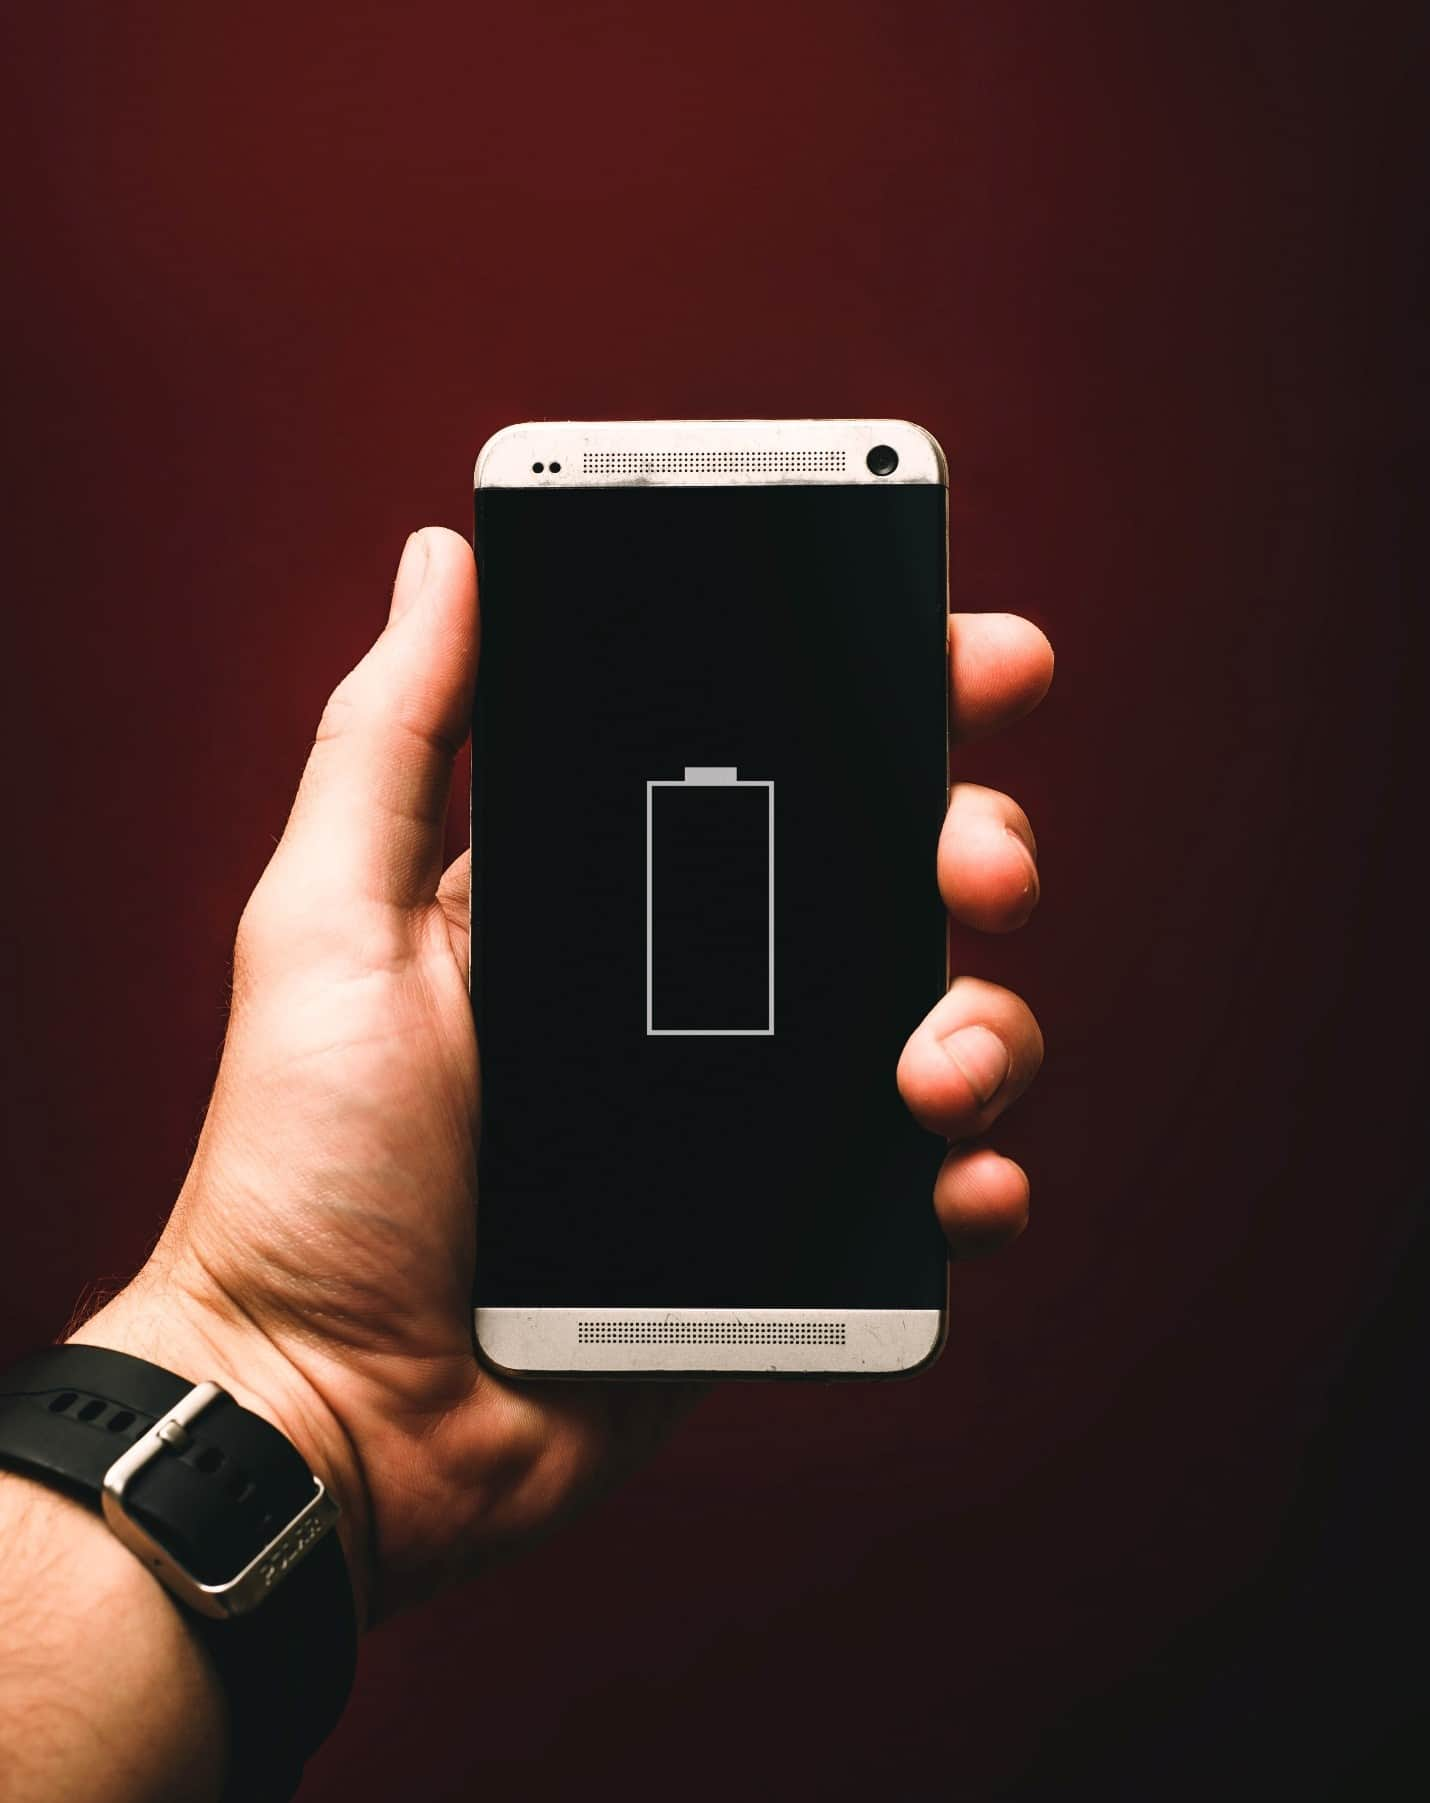 content/en-au/images/repository/isc/2020/9910/prolong-your-smartphone-battery-lifespan-1.jpg